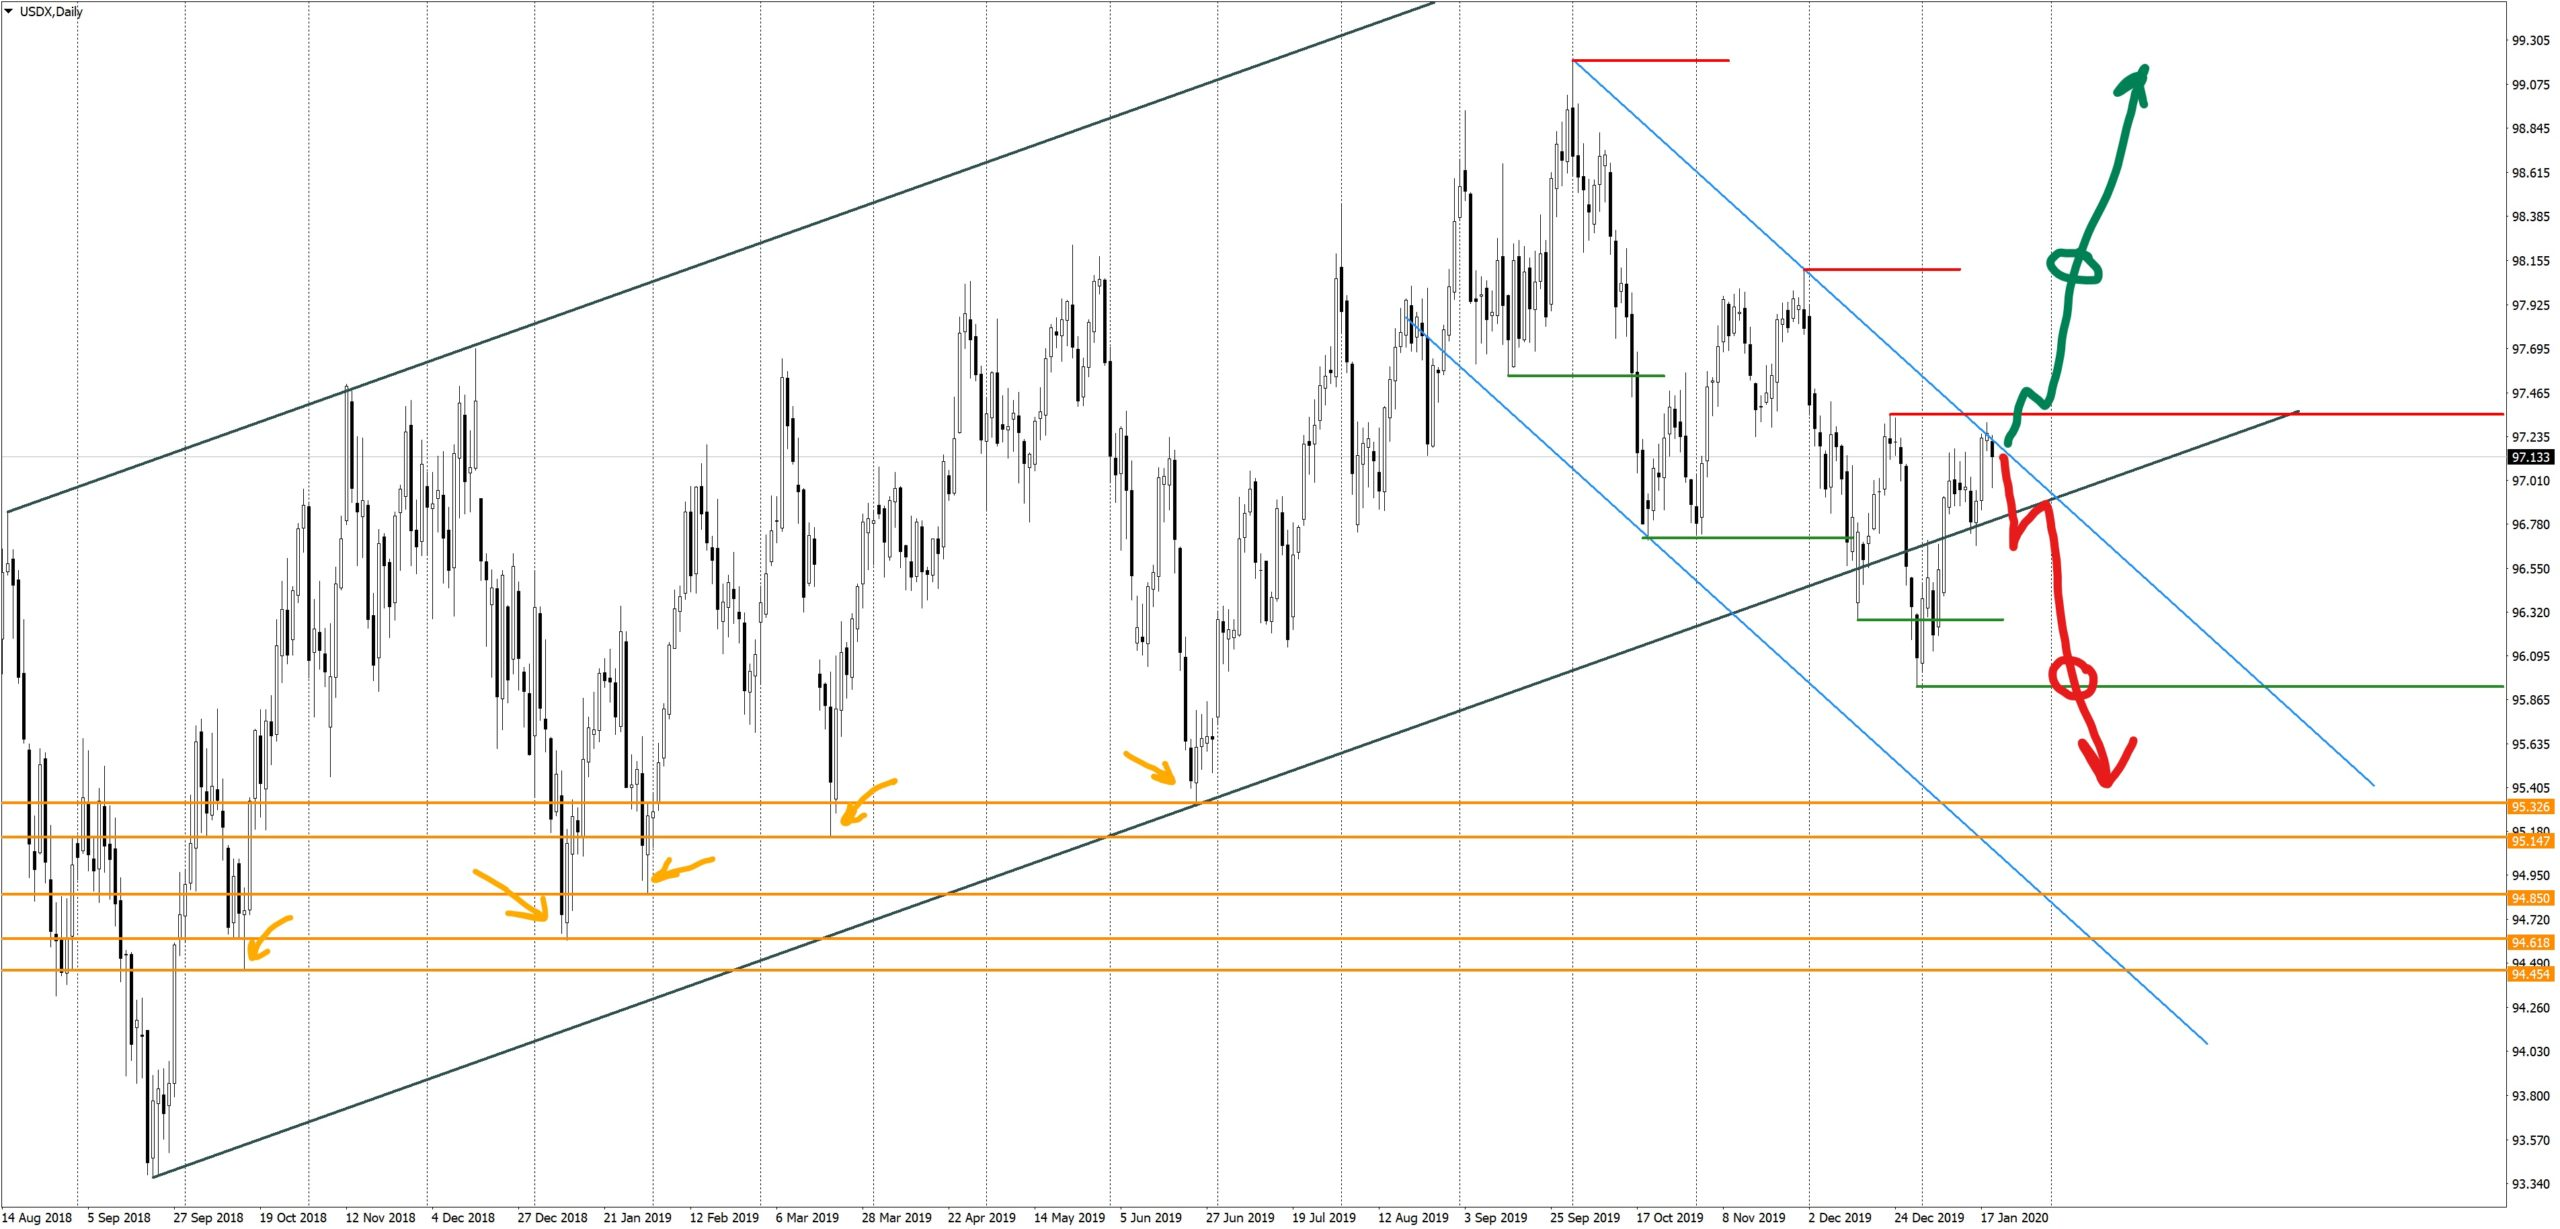 USDX Daily analysis